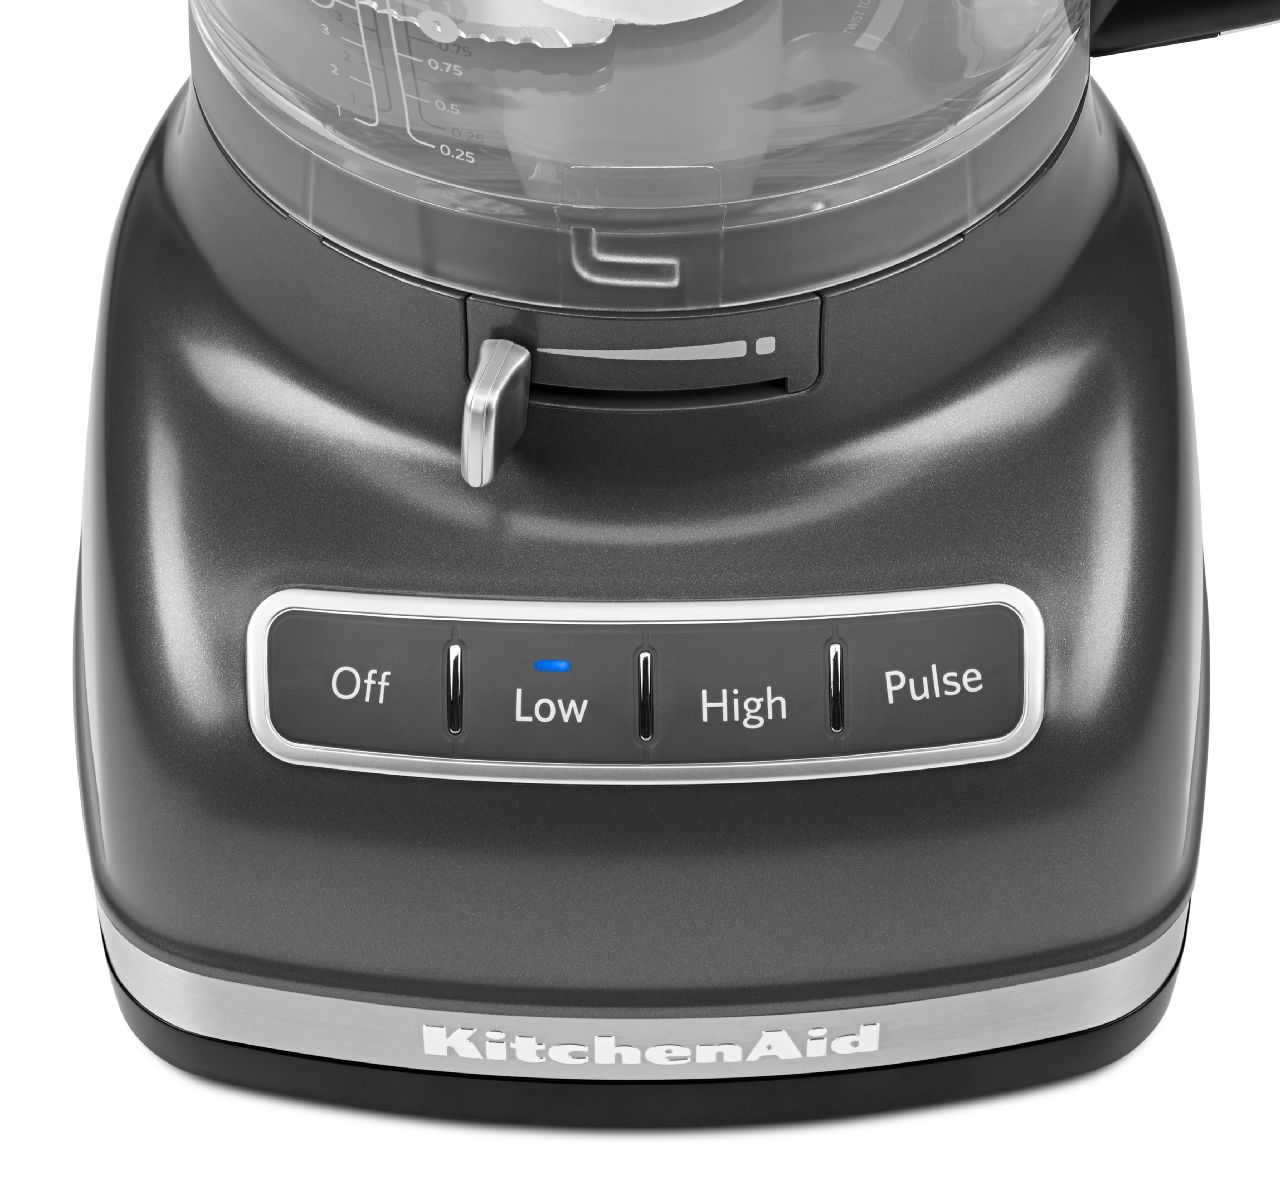 KitchenAid-14-Cup-Food-Processor-with-Commercial-Style-Dicing-Kit-KFP1466 thumbnail 7